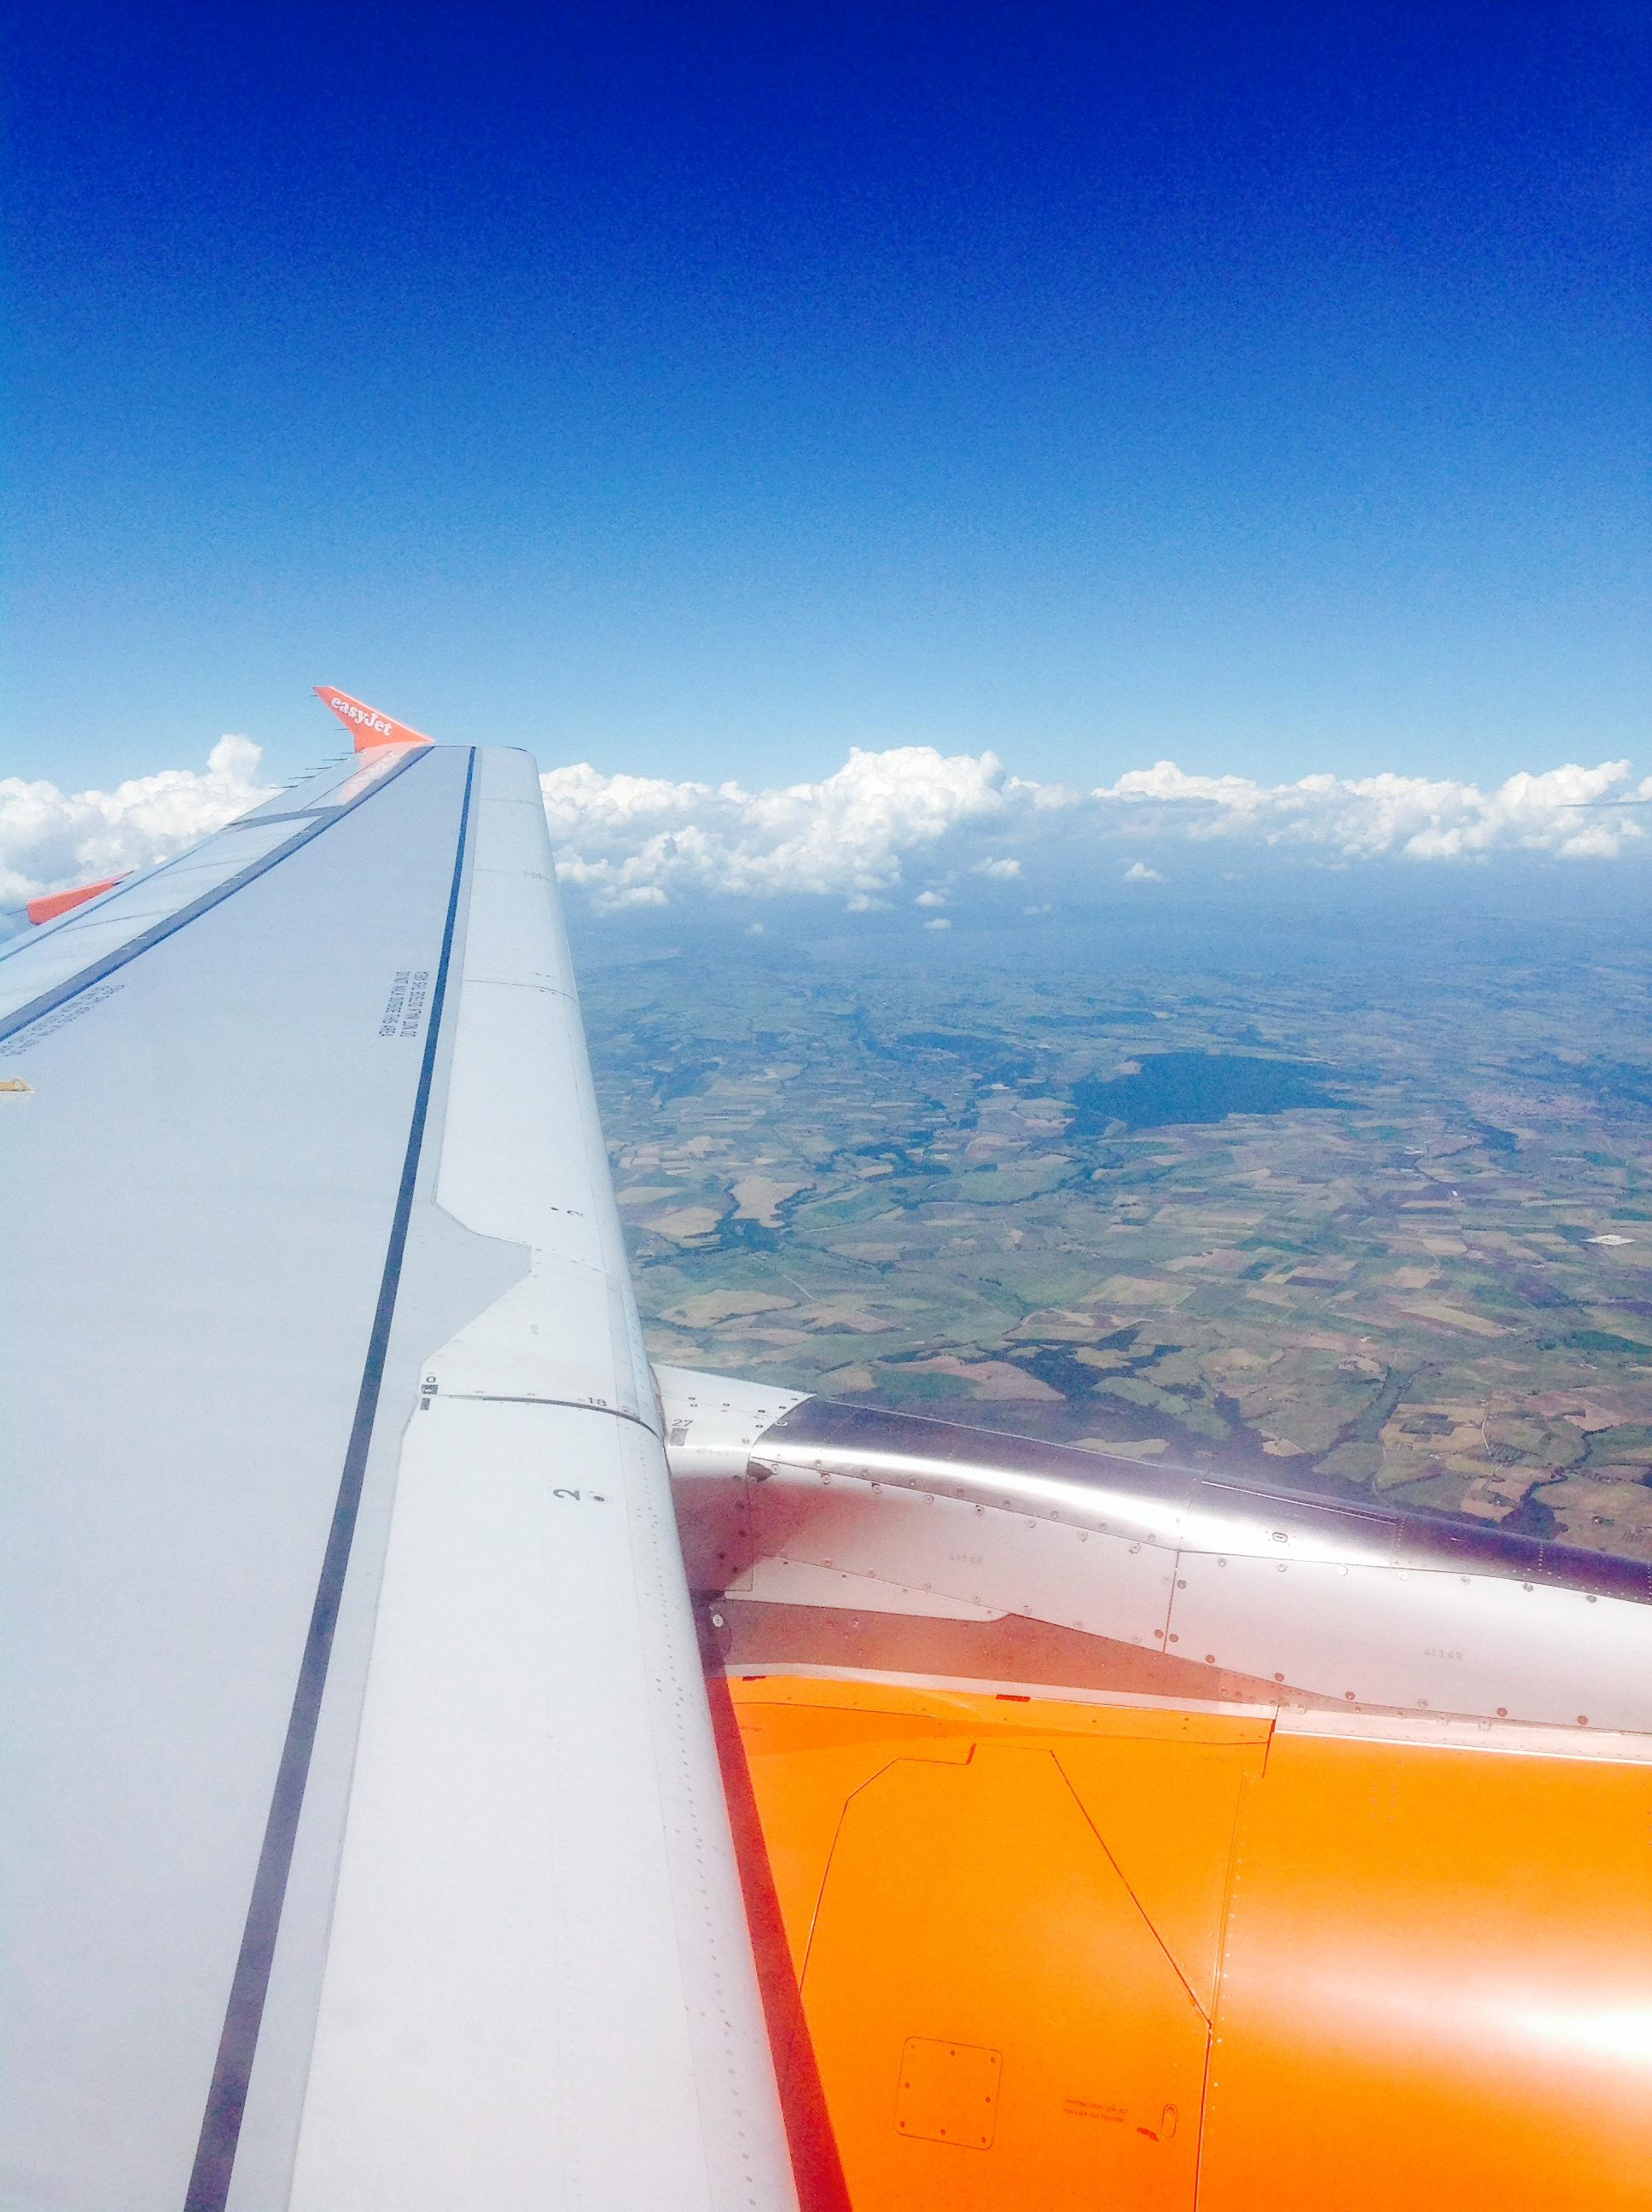 The view as we descend into Italy! And all the wing bolts  that stayed in place - BONUS!